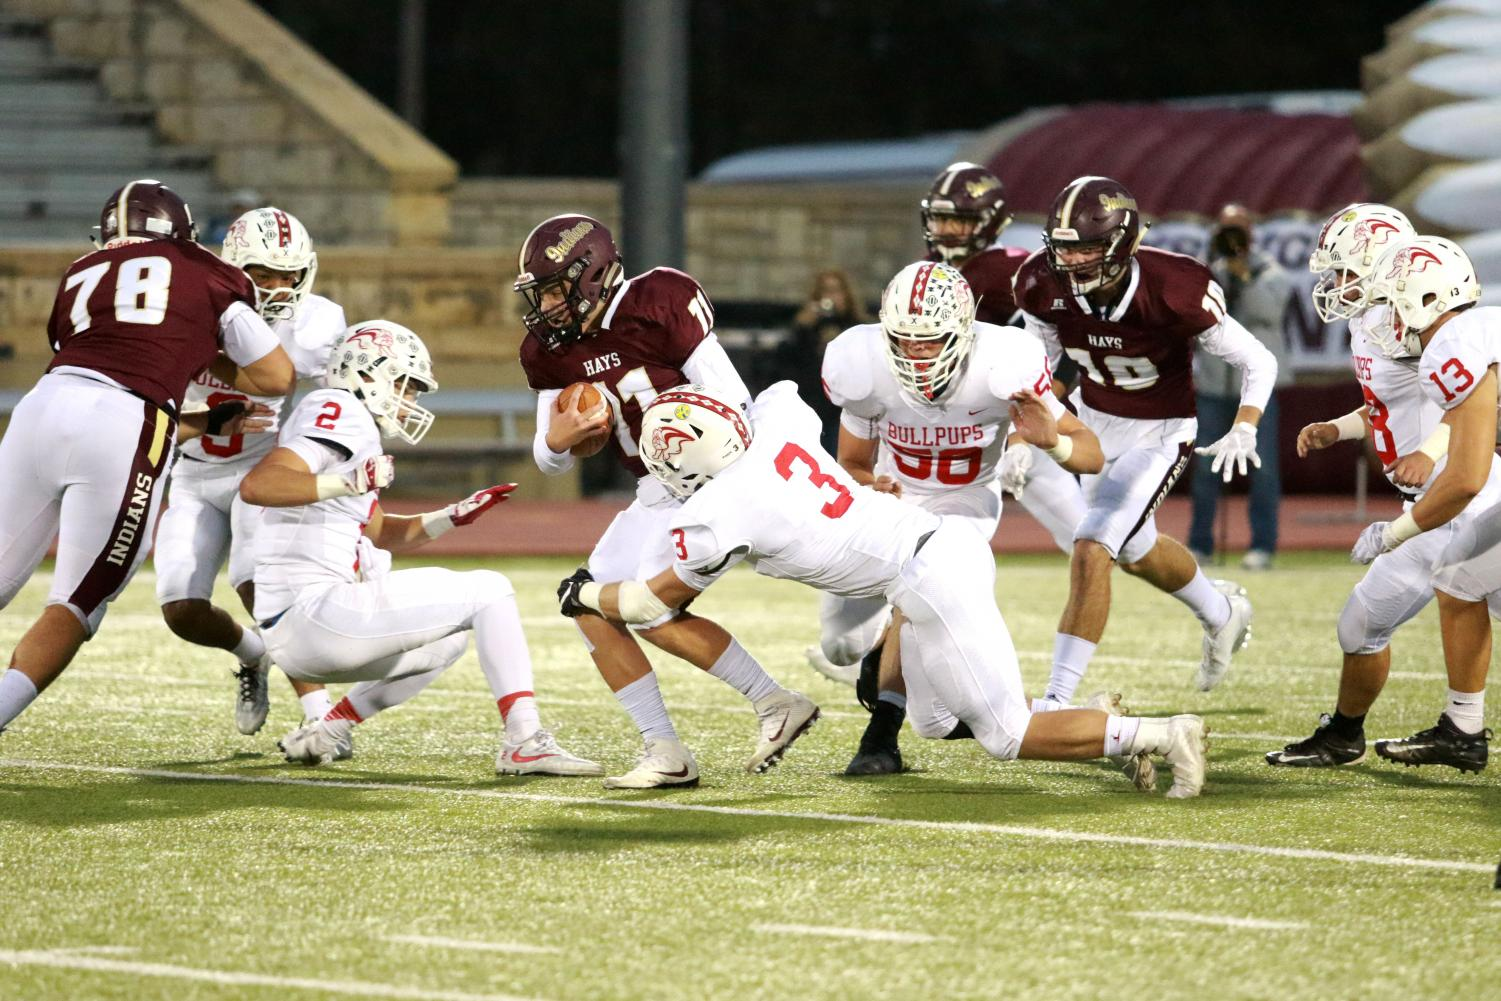 Senior Hunter Brown tries to weed through McPherson defenders in a recent game against the McPherson Bullpups. The Indians lost to the Wamego Red Raiders 24-21 on Oct. 27 to end their season.